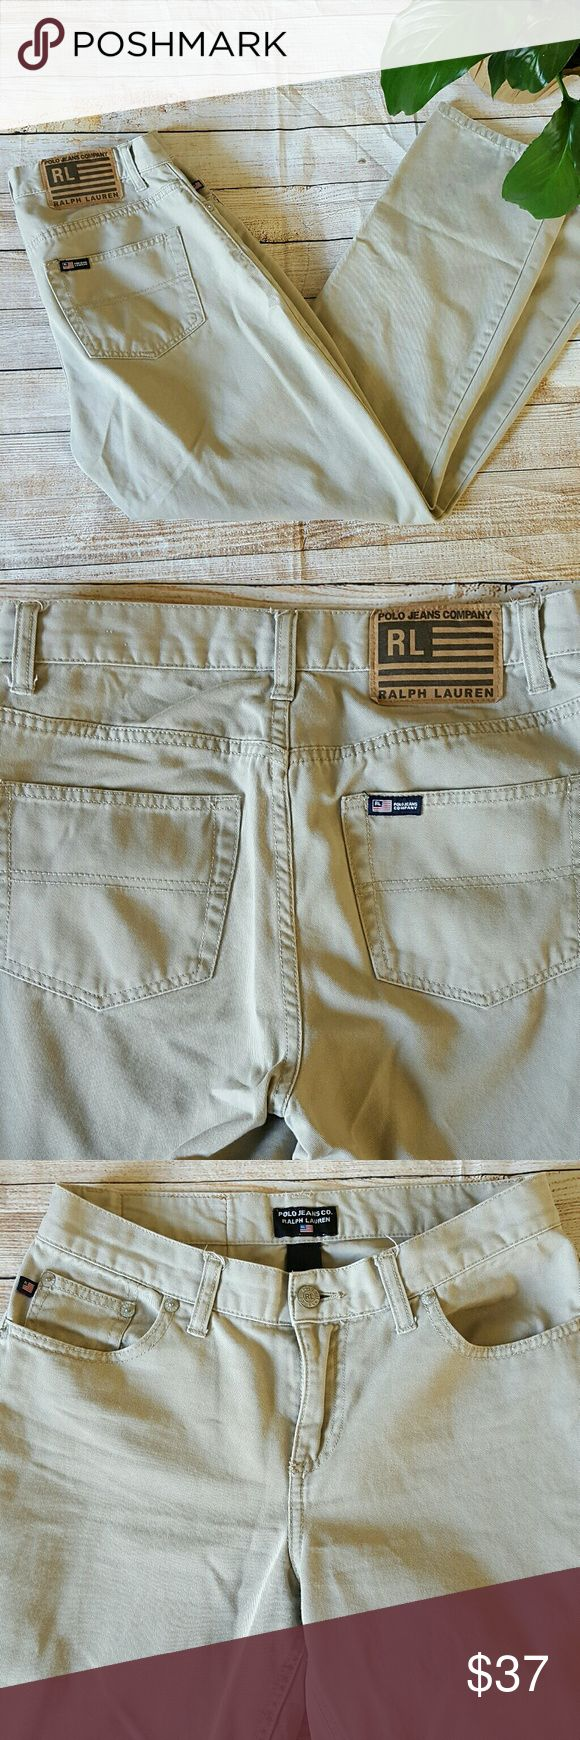 Polo Ralph Lauren Womens Beige Jeans Denim Pants 1 Polo Ralph Lauren Womens Beige Jeans / Denim Pants - 100% Cotton; Tan Khaki.  Size: 4 Gently pre-owned condition with no flaws. Please see photos for details.  Waist:  15 inches, laying flat, unstretched. Rise: 9.5 inches.Inseam:  28.5 inches. Lauren Ralph Lauren Jeans